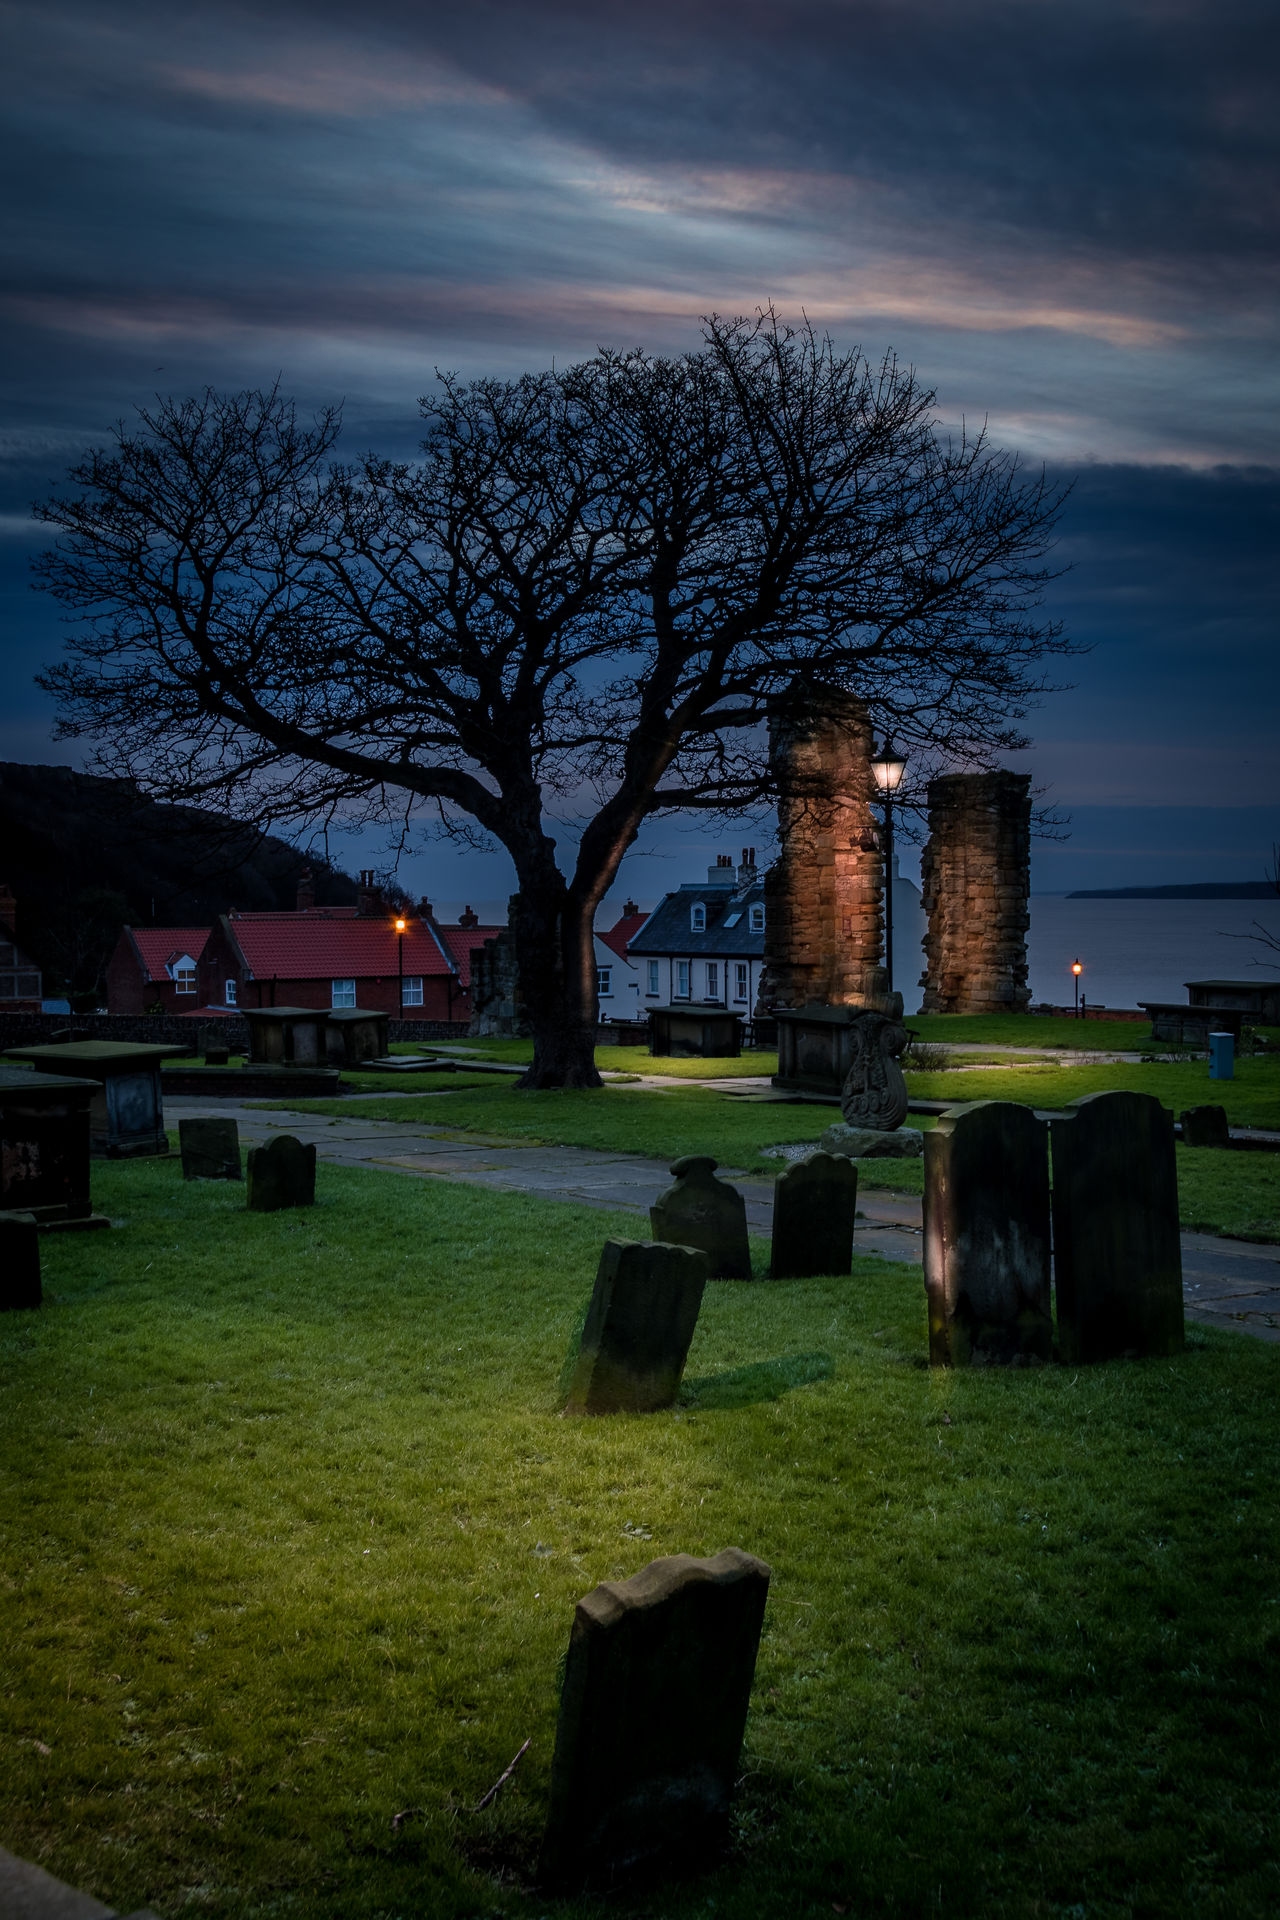 Lamplit Churchyard... Ancient Bay, Color Image, Dawn_of_day, England, Exterior, Gravestone, Graveyard, Hdr, Lamp, Lampost, Landscape_photography, Long_exposure, Morning, North_yorkshire, Portrait_orientation, Scarborough, Tone_mapped, Tree, Vignette, Wintertime Grass History Landscape Old Ruin Outdoors Tranquility Tree